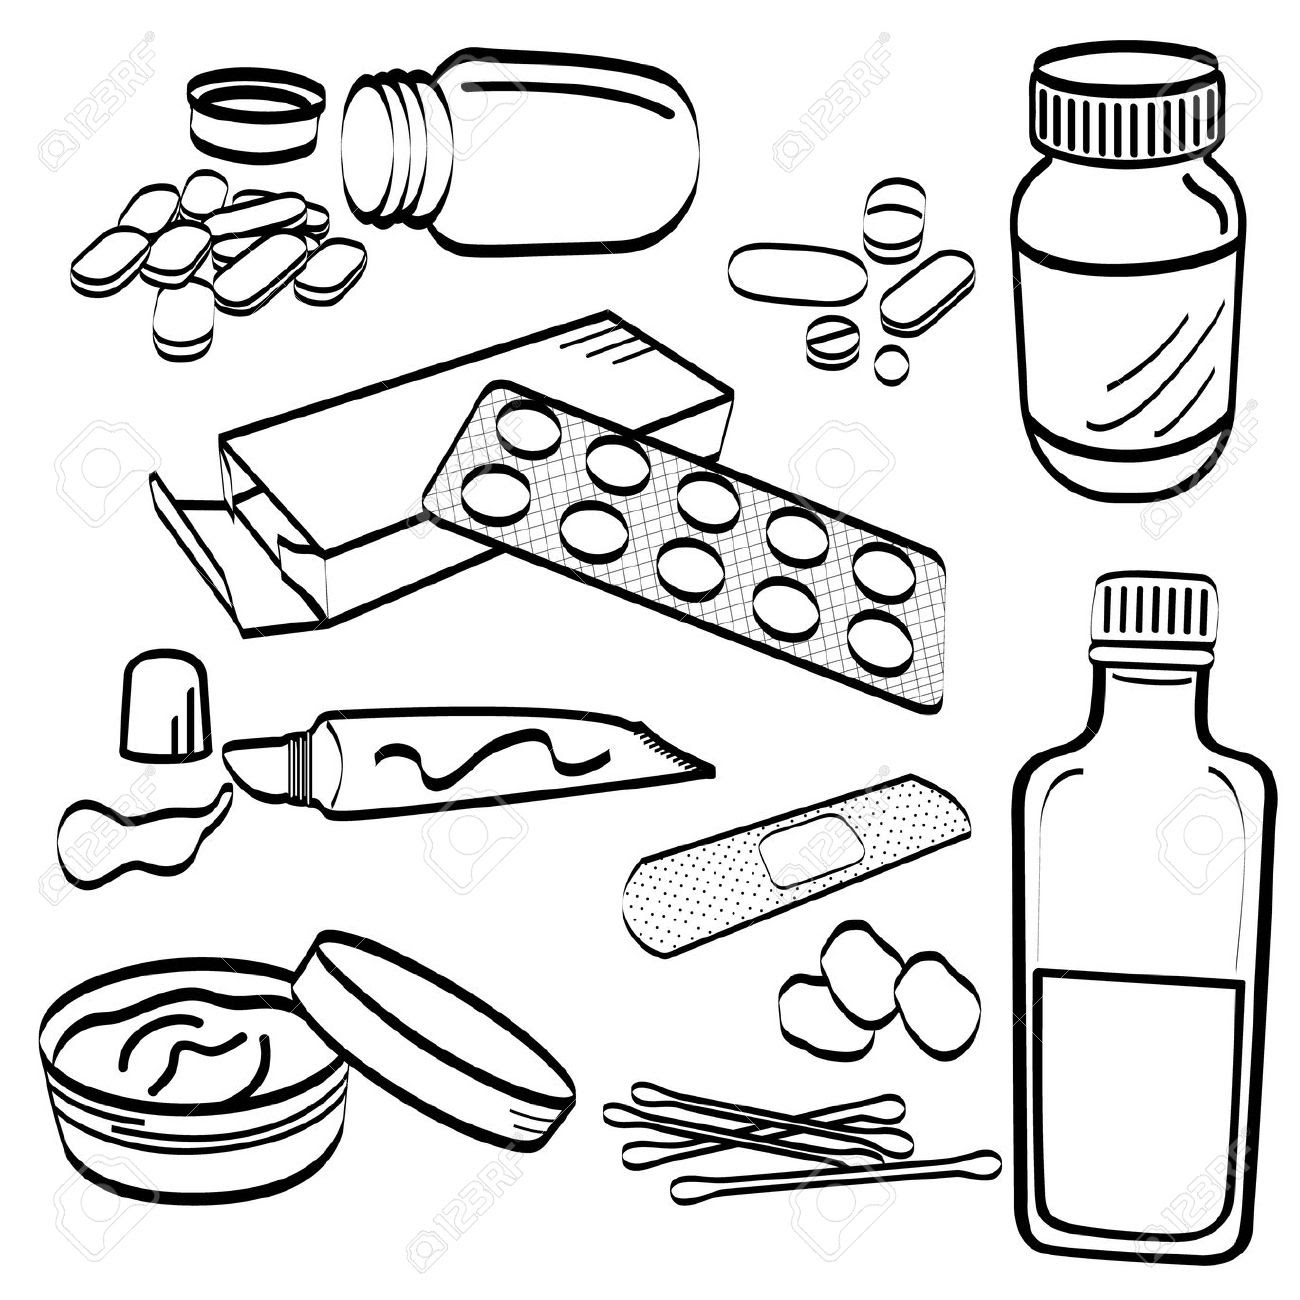 medical kit and first aid coloring page | Medical kit, Coloring ... | 1300x1300